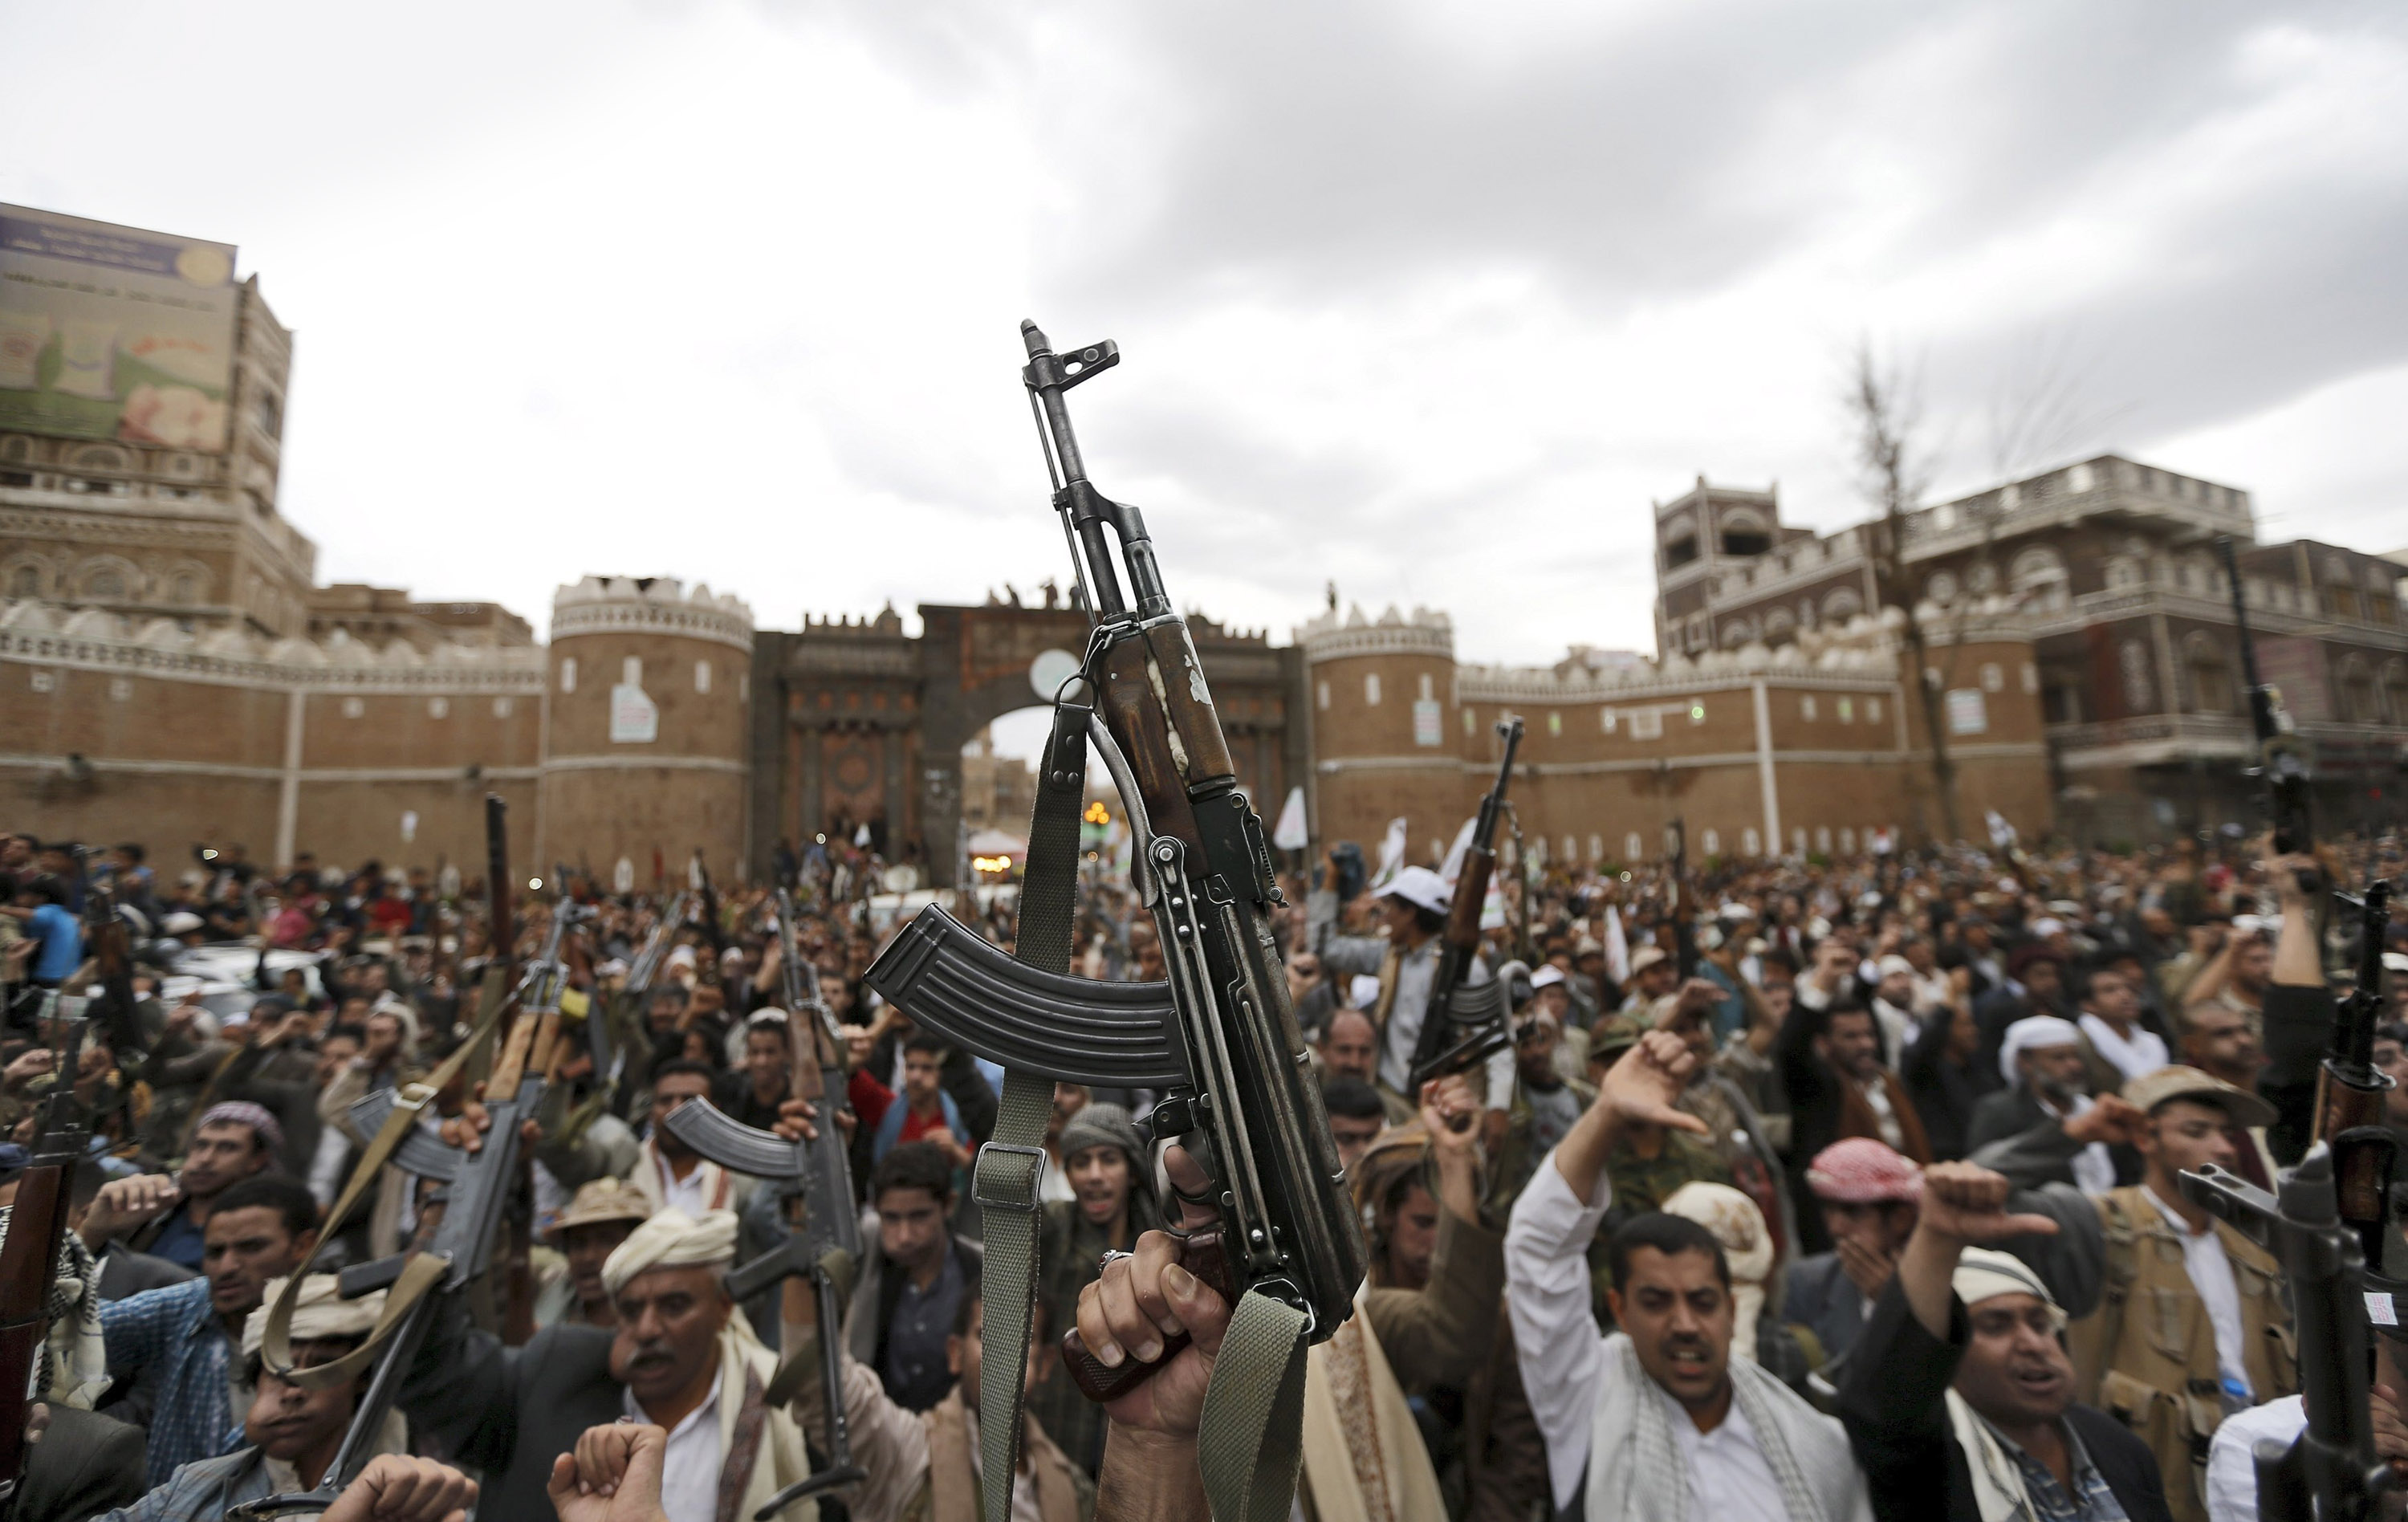 Iranian-backed Shi'ite rebels in Yemen's capital, Sana'a, gather to protest against air strikes by a Saudi-led coalition.